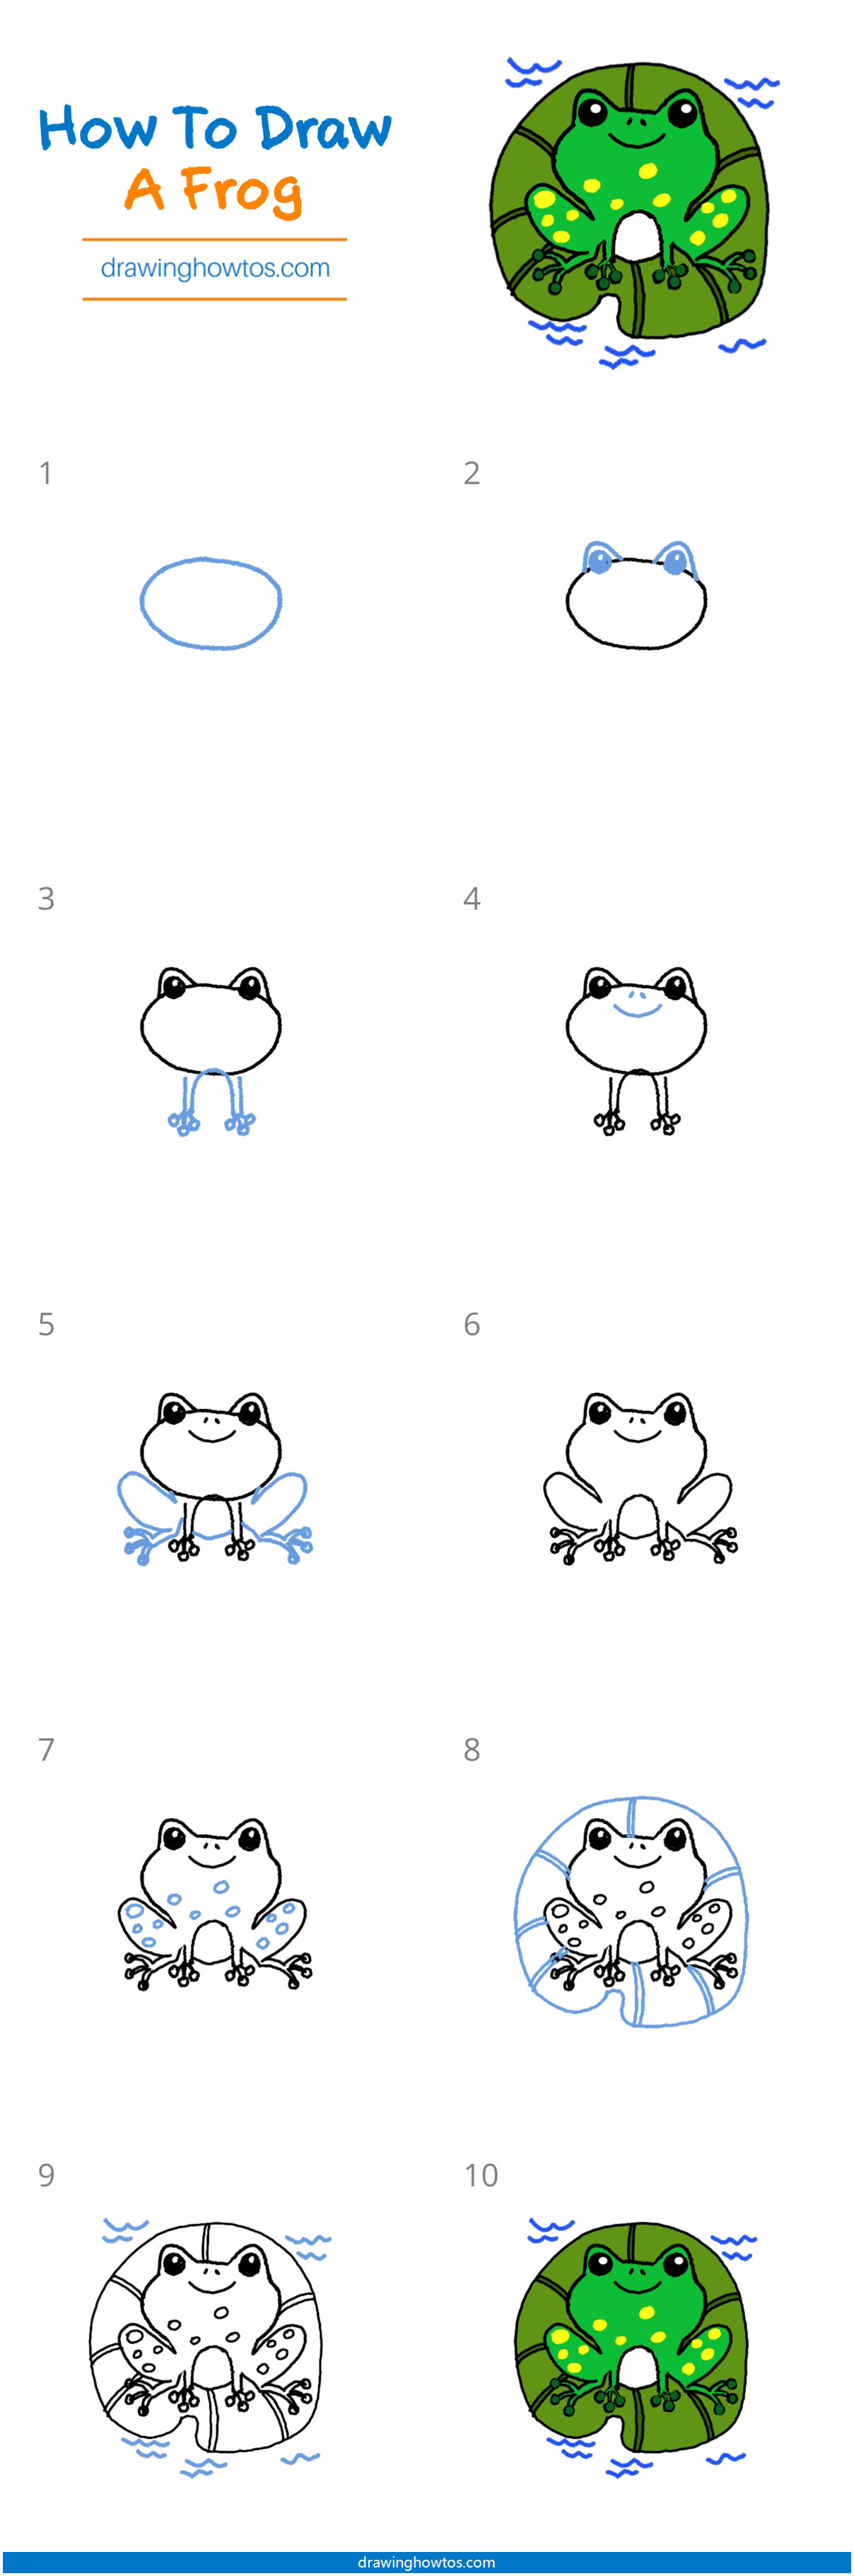 How to Draw a Frog - Step by Step Easy Drawing Guides ...